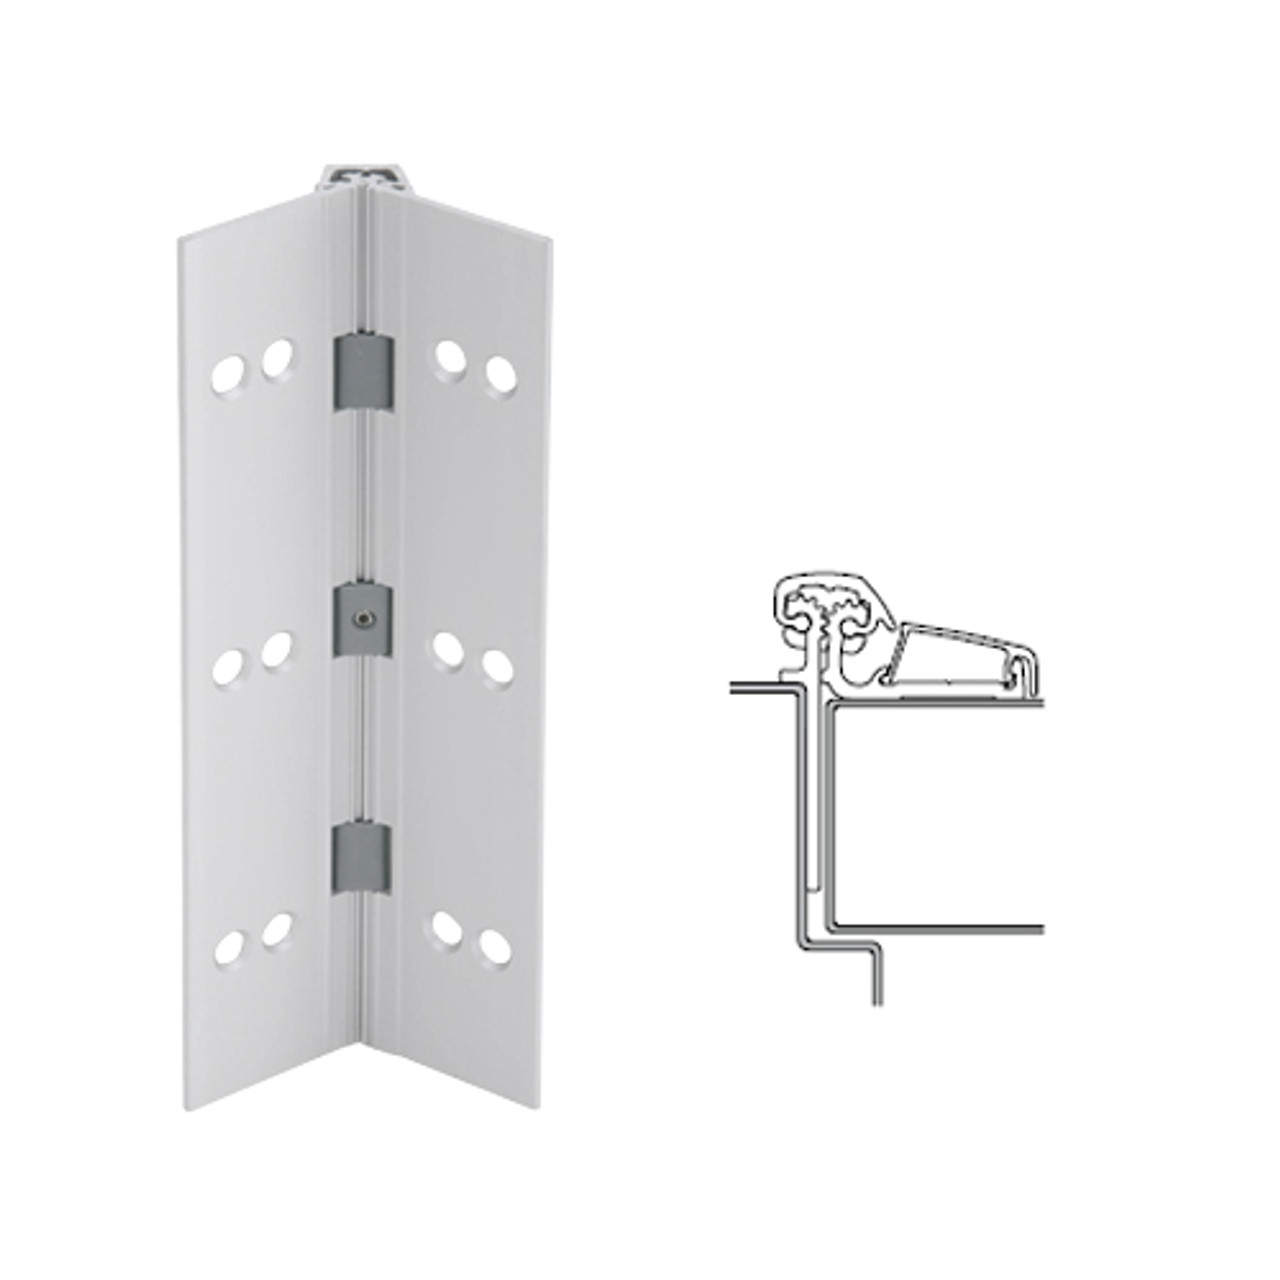 053XY-US28-85-WD IVES Adjustable Half Surface Continuous Geared Hinges with Wood Screws in Satin Aluminum